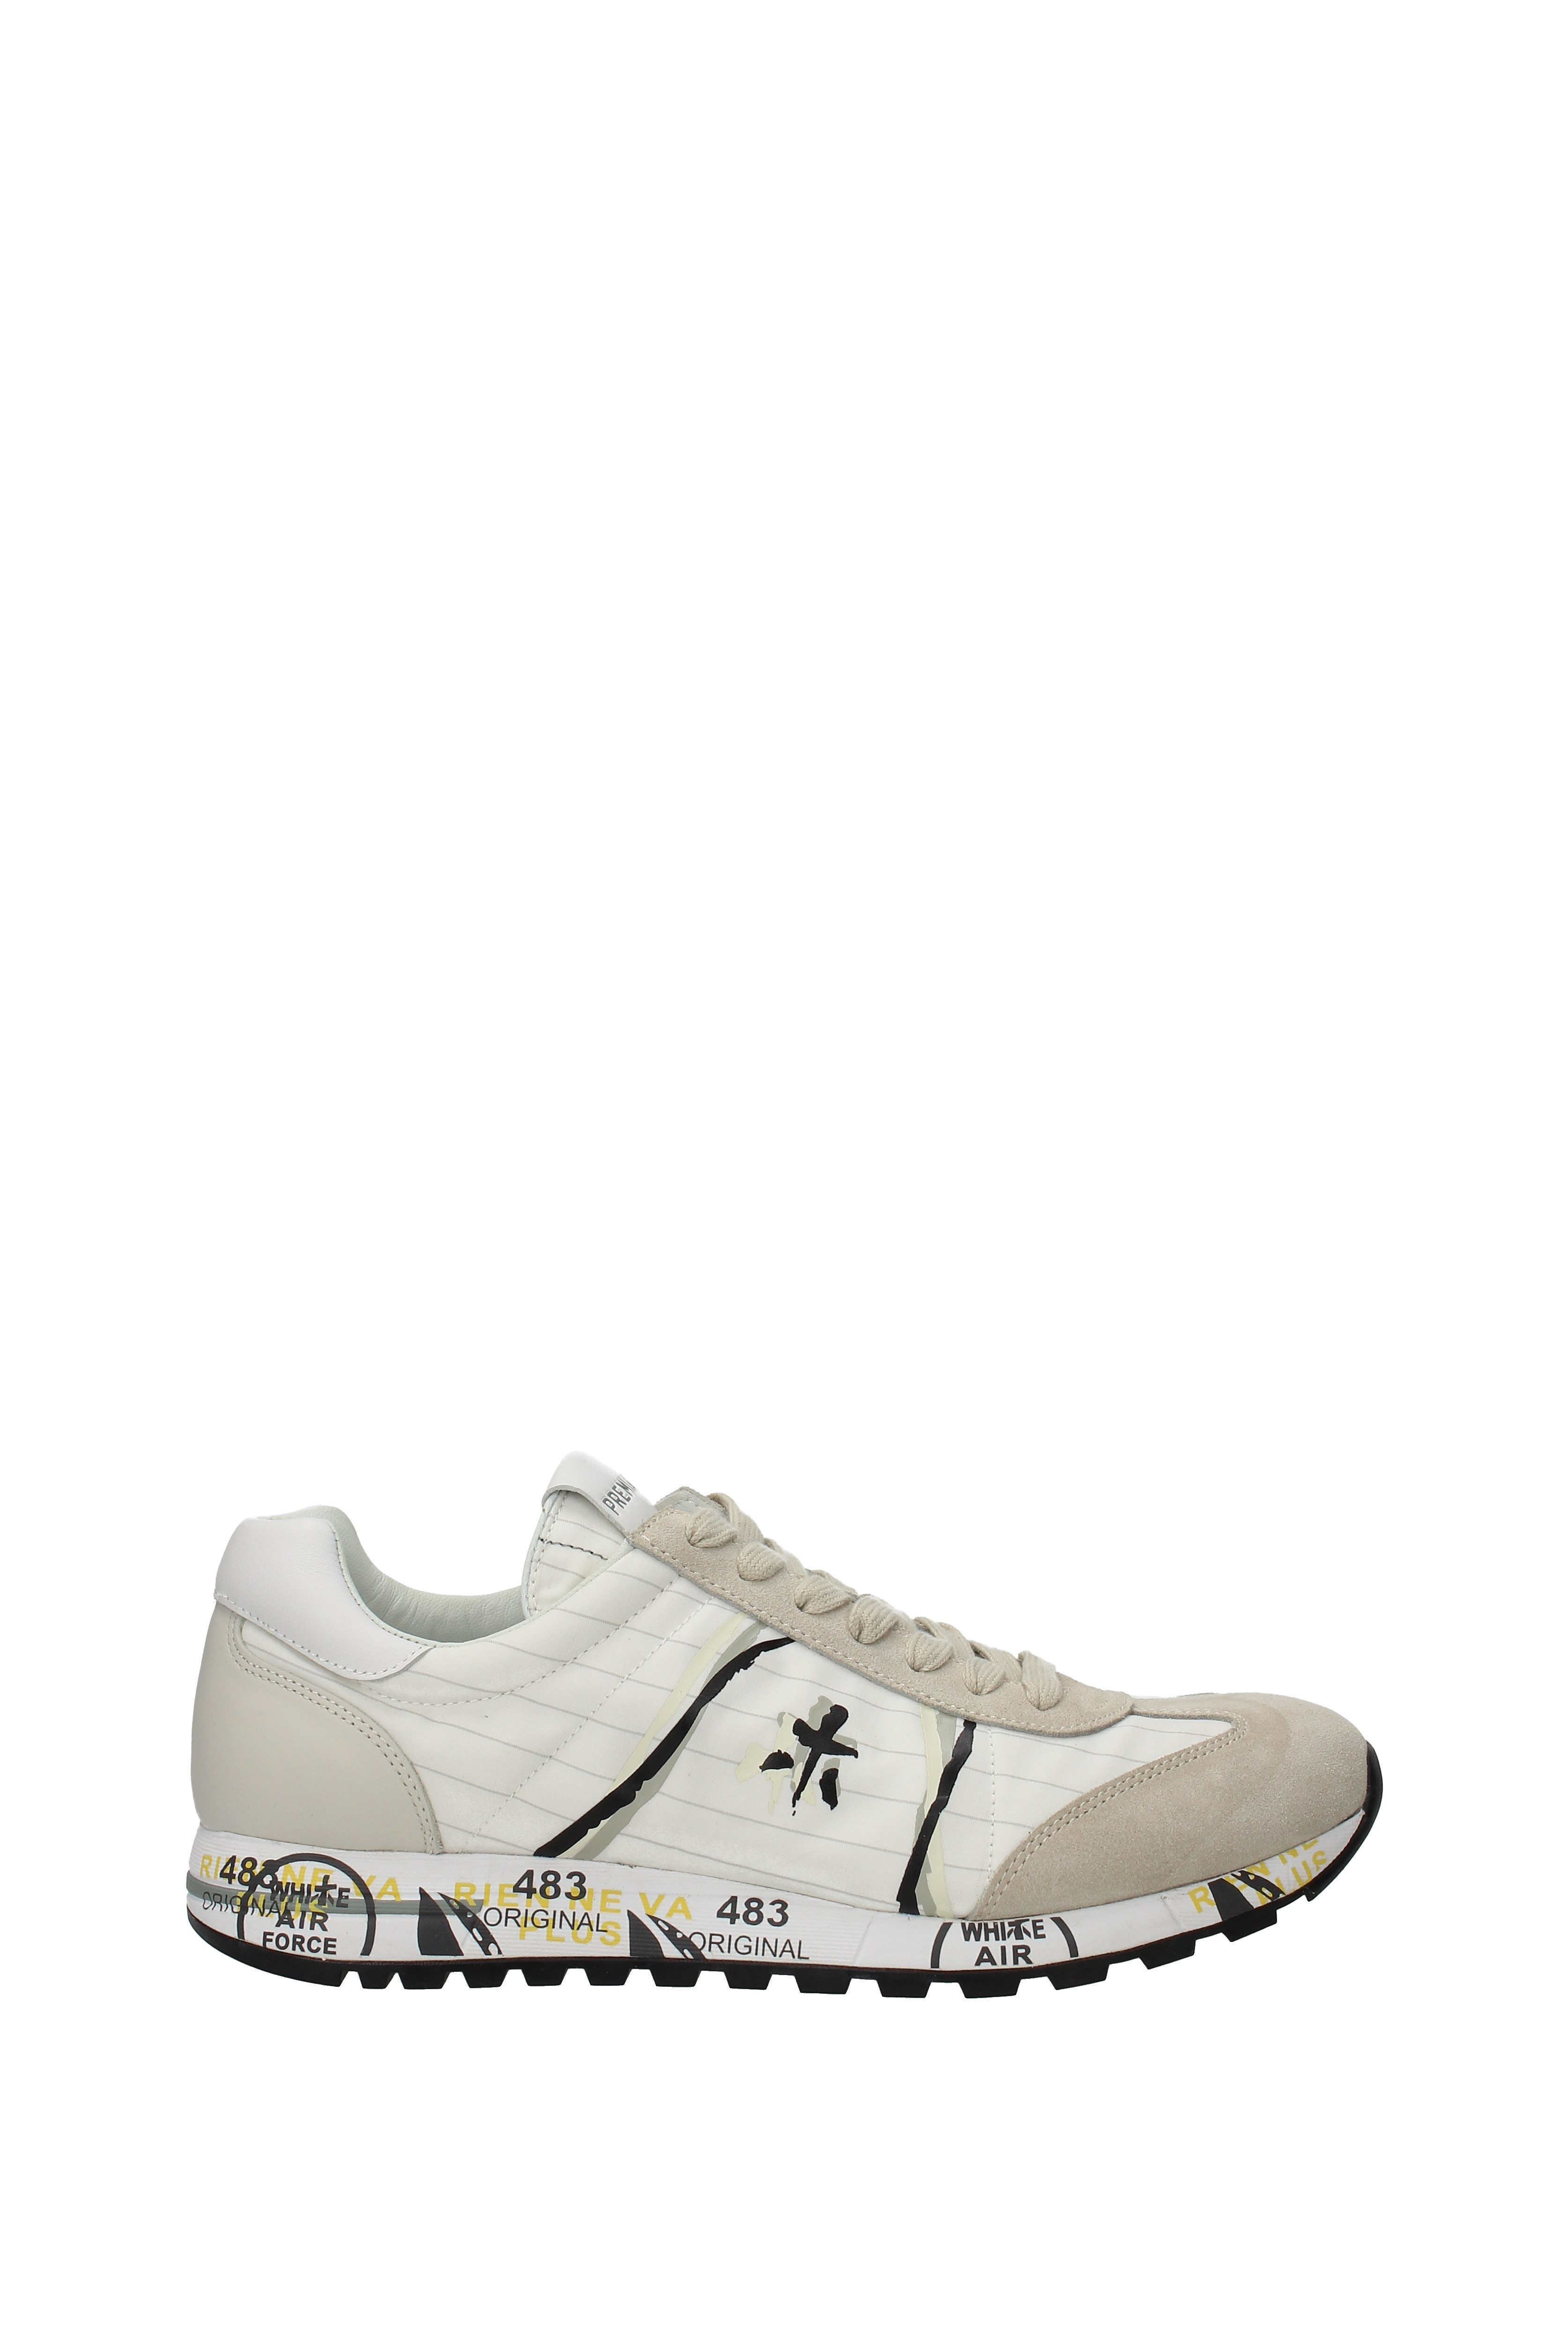 Sneakers Premiata lucy Herren - (LUCY28) Stoff (LUCY28) - 8757b3